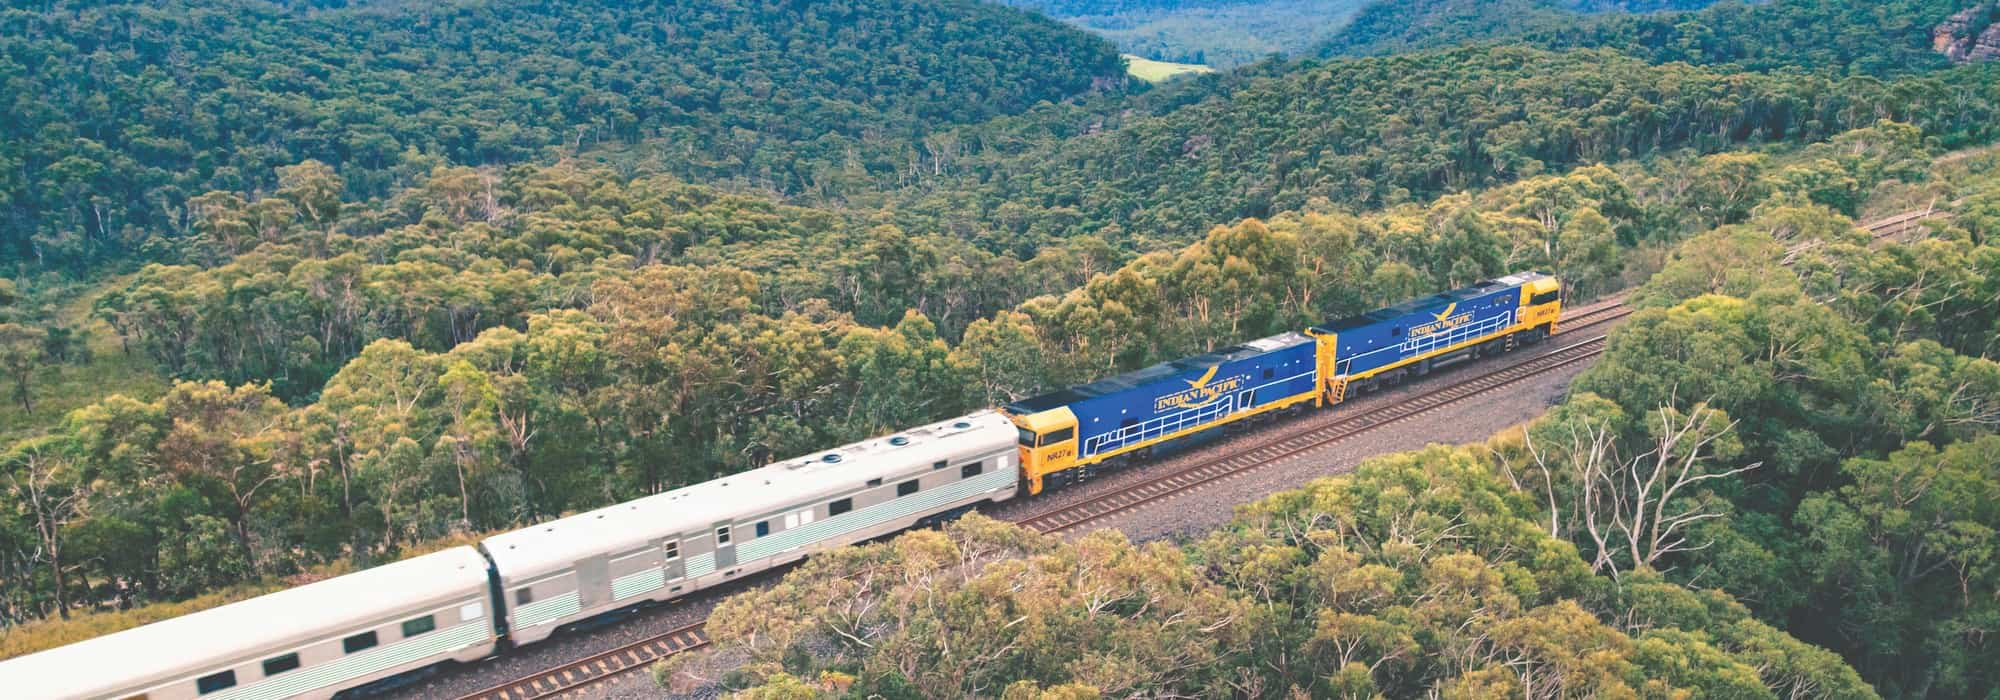 Indian Pacific | TravelManagers